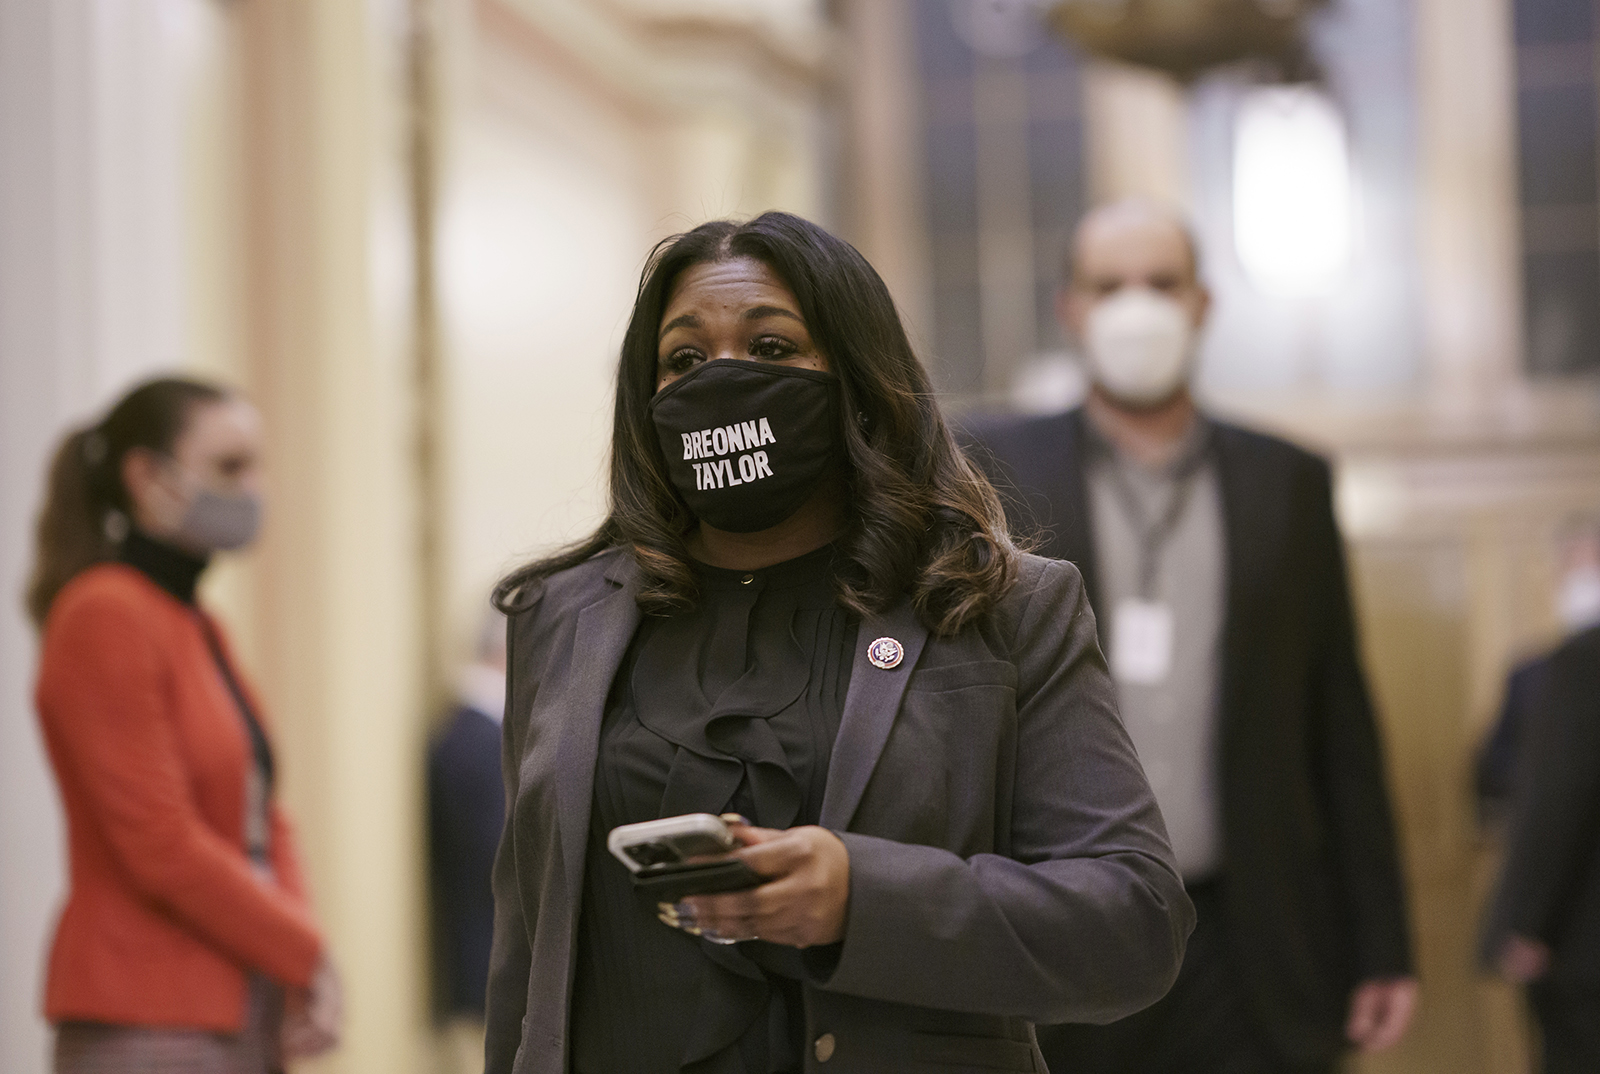 FILE - In this Feb. 4, 2021 file photo, Rep. Cori Bush, D-Mo., arrives at the House chamber at the Capitol in Washington. Bush, a St. Louis Democrat, filed a private bill Monday, Feb. 22, 2021, that would grant permanent U.S. residency to Alex Garcia, a Honduran immigrant who has lived inside a suburban St. Louis church since 2017 to avoid deportation. Private bills provide benefits only for the specified individual and are rare. Bush said only four have passed over the past 14 years. (AP Photo/J. Scott Applewhite File)